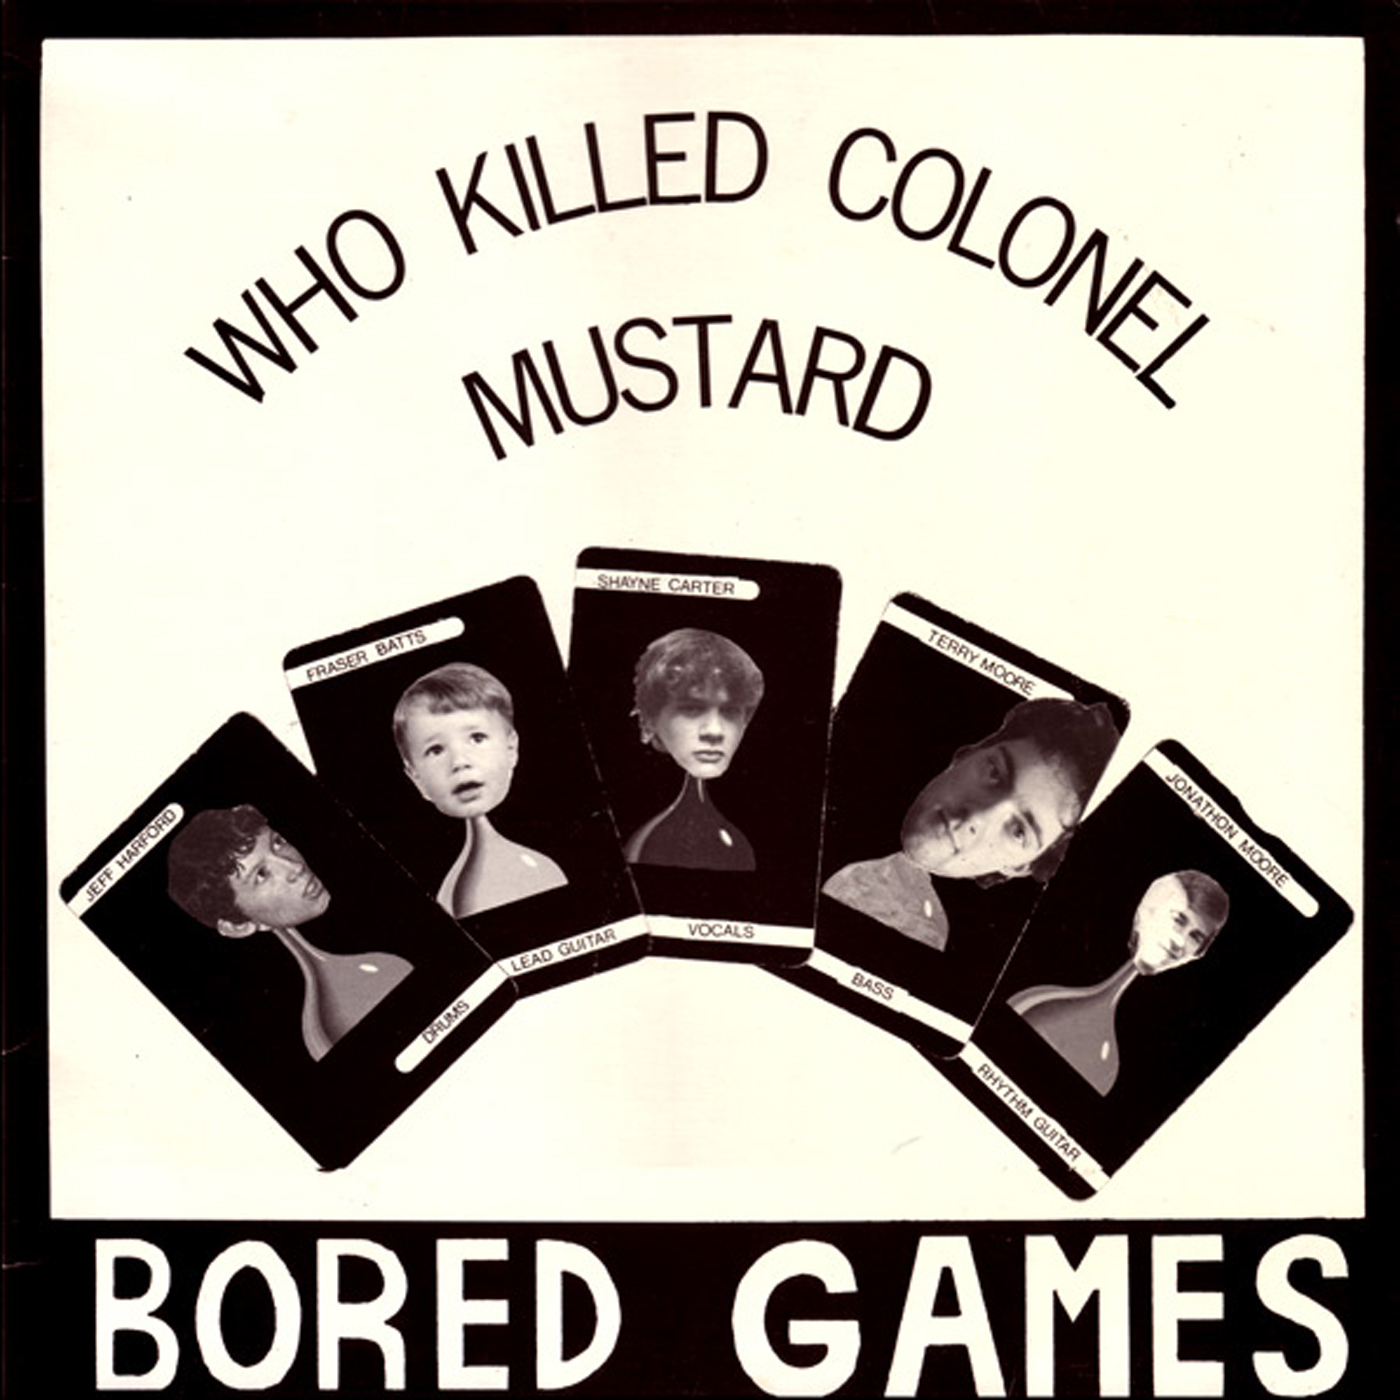 - Who Killed Colonel Mustard